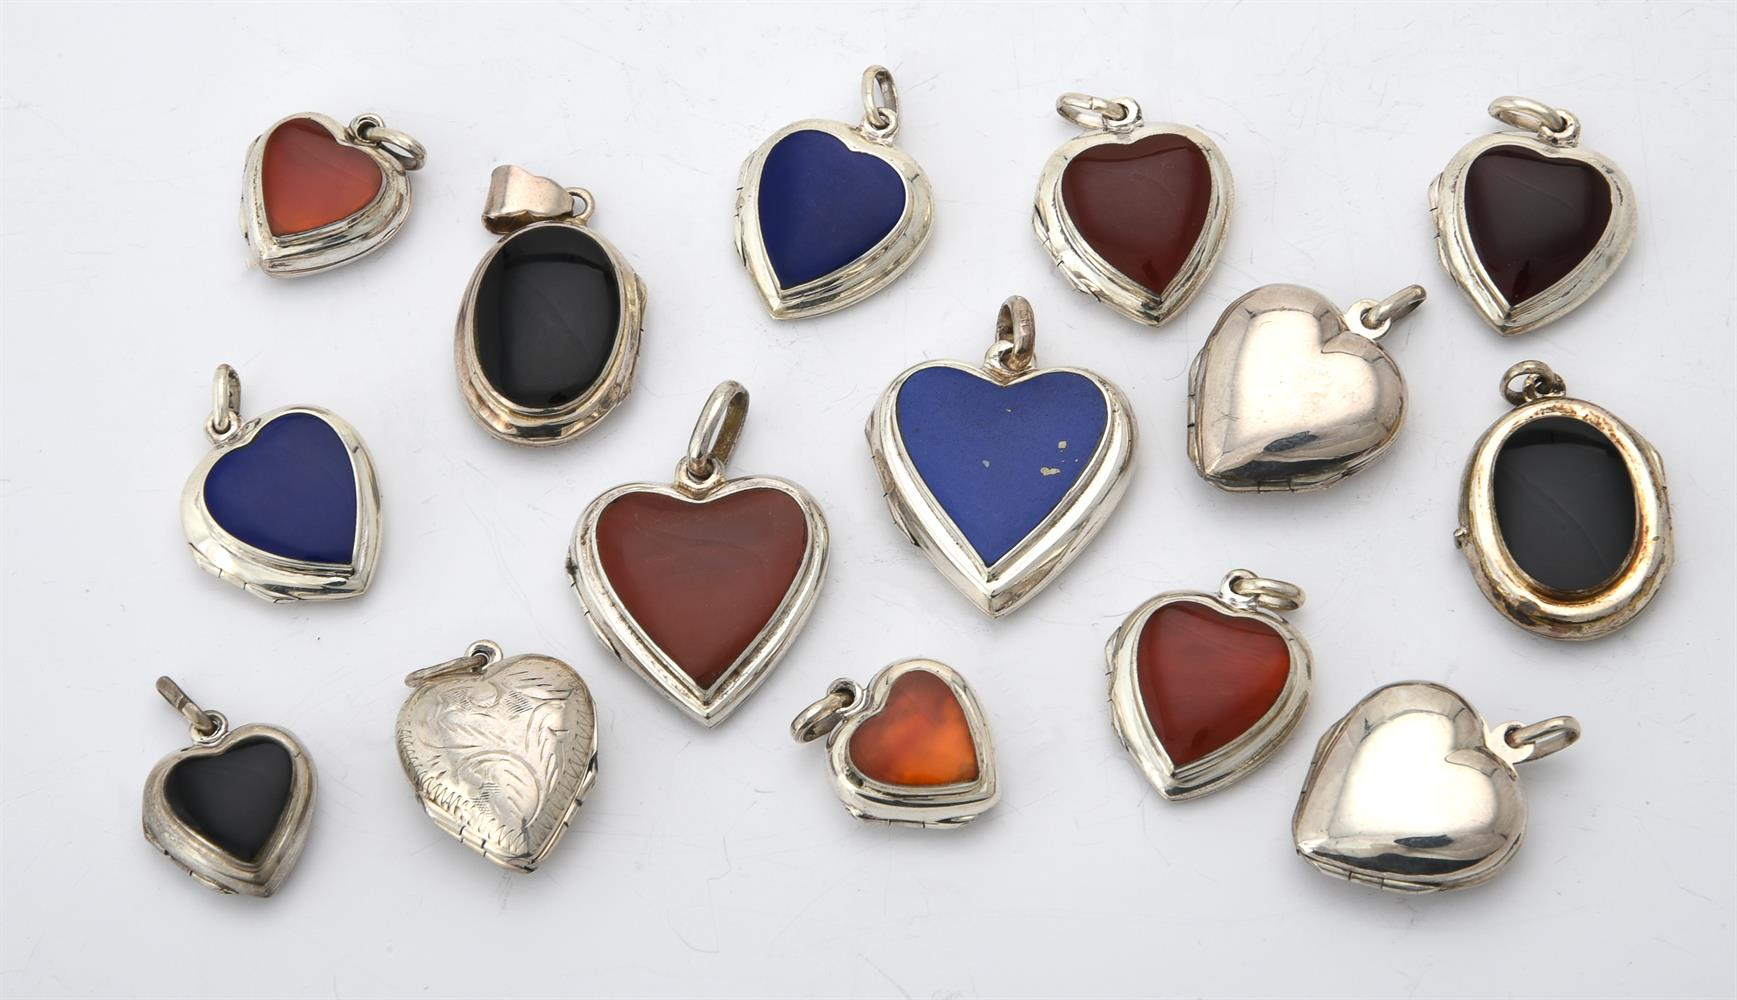 A collection of silver and silver coloured heart lockets